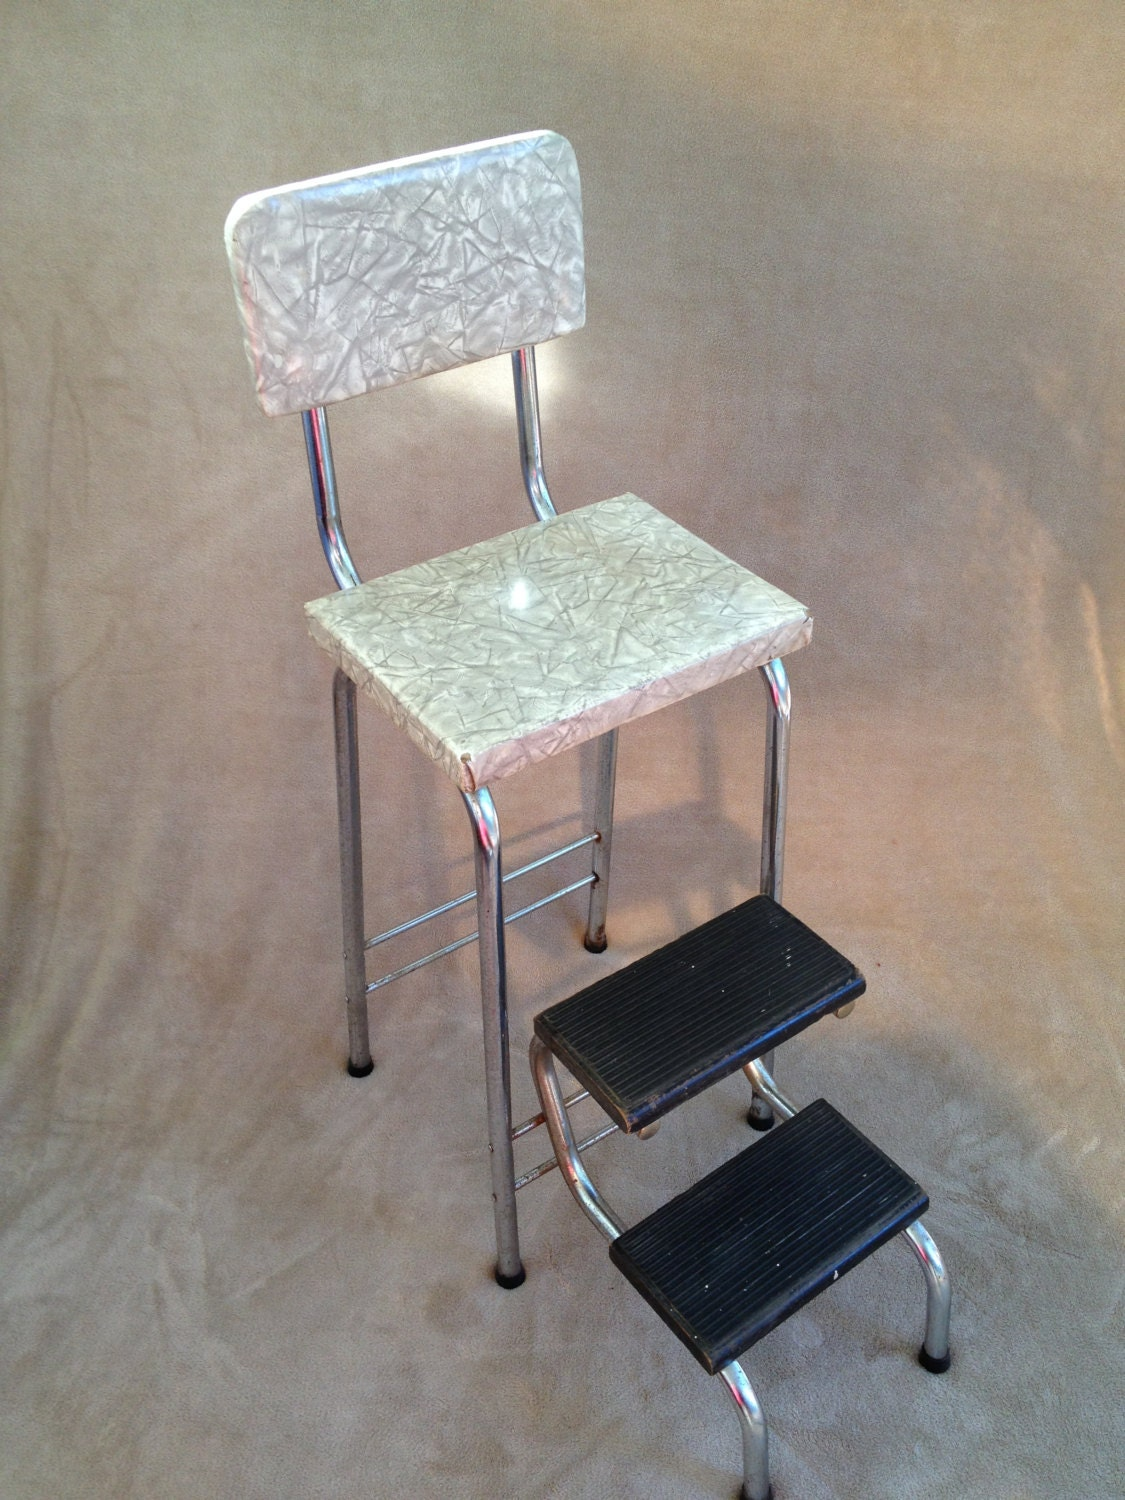 Vintage Fold Out Step Stool and Chair by VarietyRetro on Etsy